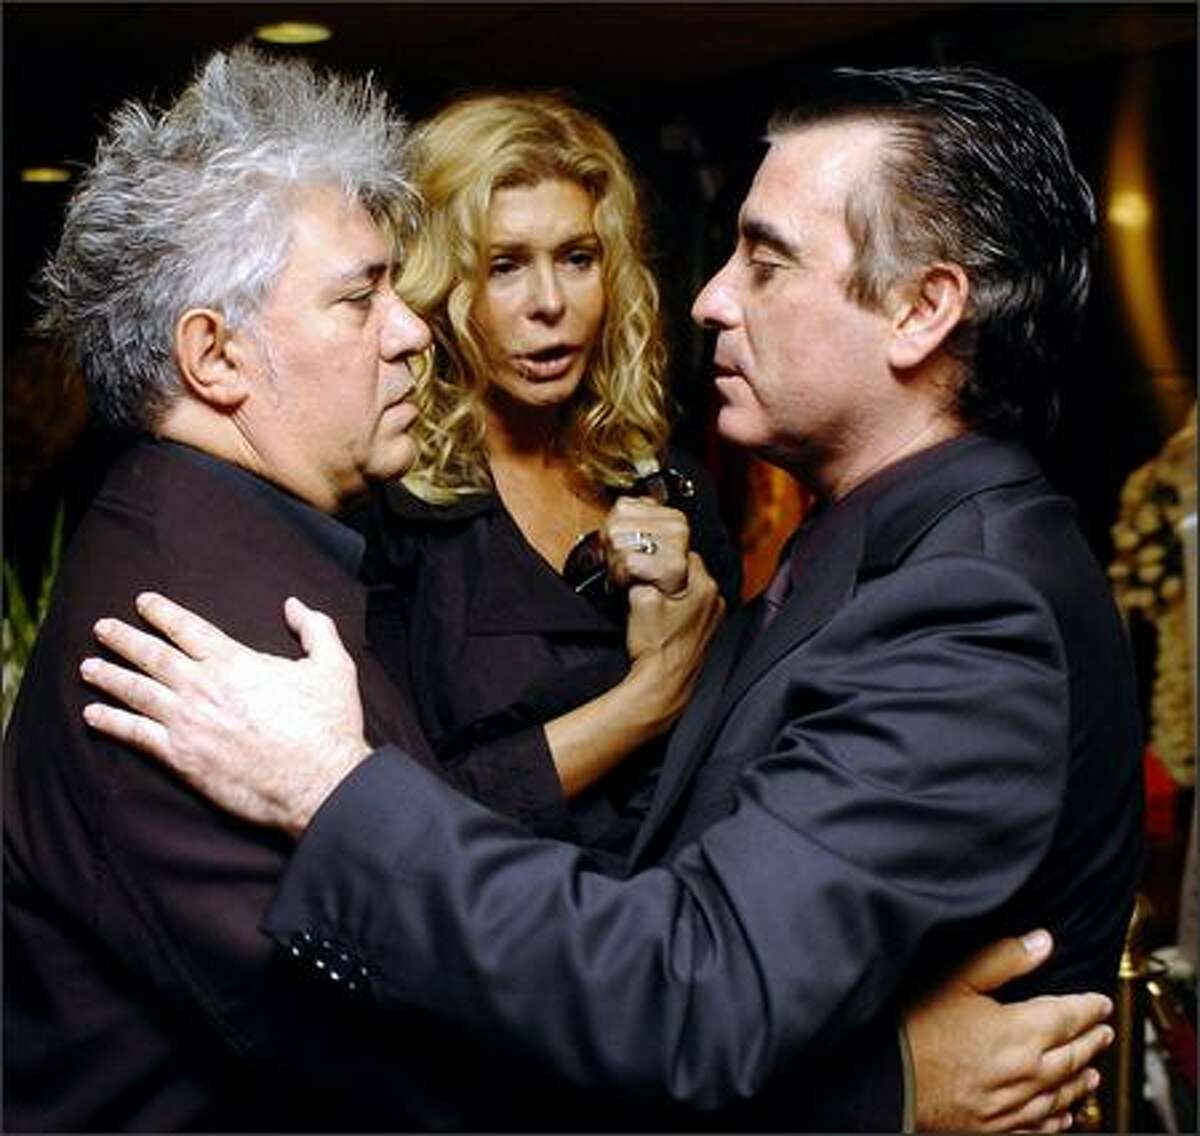 Spanish guys know how to hold each other and make it matter. Director Pedro Almodovar greets bullfighter Jose Ortega Cano, right, widower of actress Rocio Jurado, during a wake in Madrid Thursday. Beloved in Spain and Latin America, Jurado died Thursday of pancreatic cancer. She was 61.